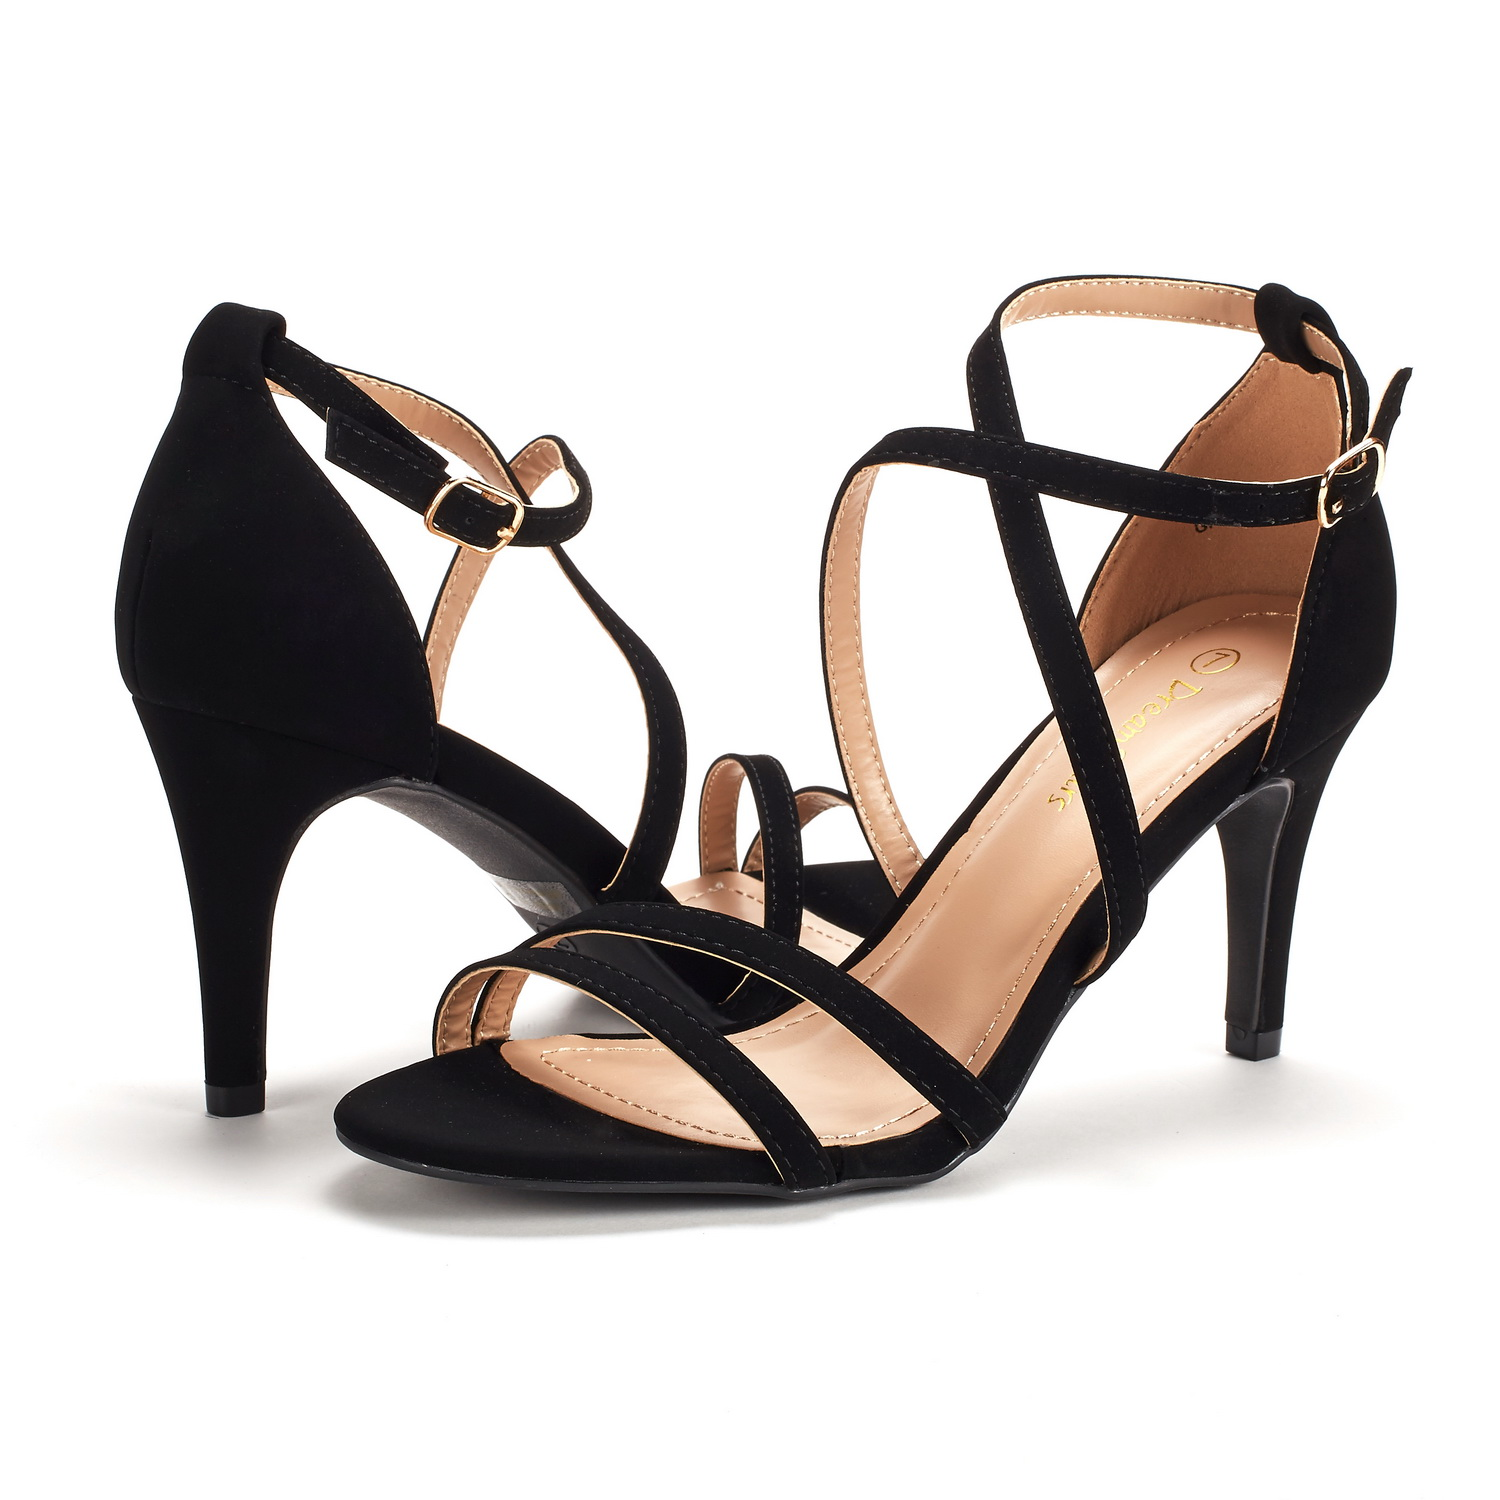 DREAM-PAIRS-Women-039-s-Ankle-Strap-High-Heel-Sandals-Dress-Shoes-Wedding-Party thumbnail 41